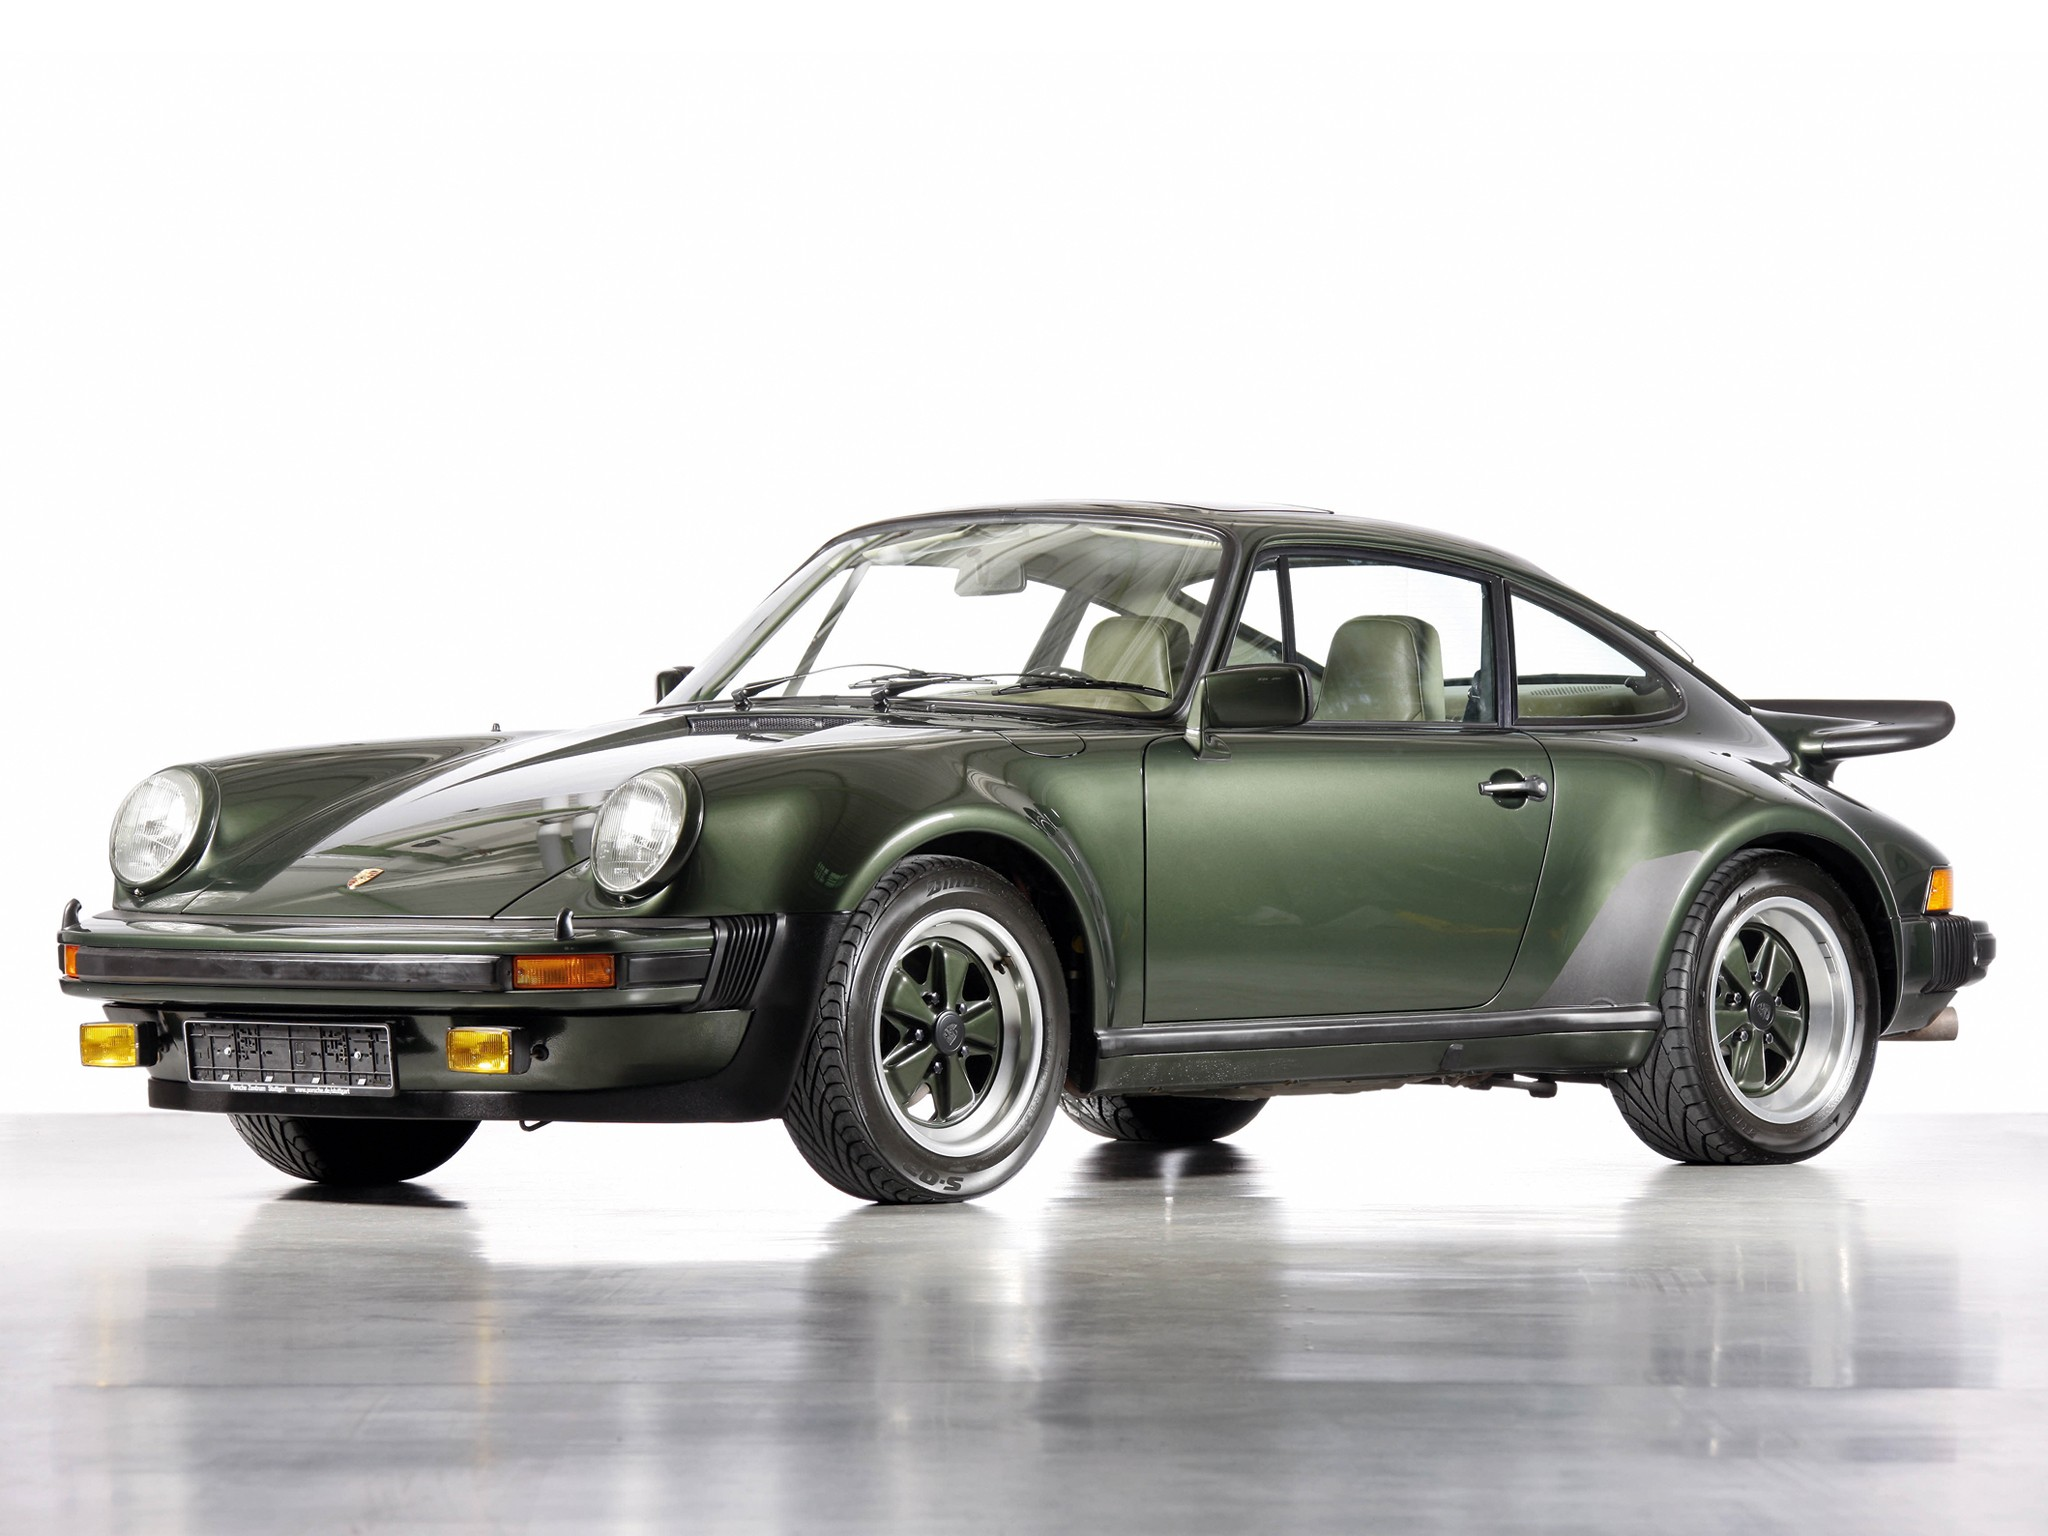 porsche 911 turbo 930 specs photos 1974 1975 1976 1977 autoevolution. Black Bedroom Furniture Sets. Home Design Ideas